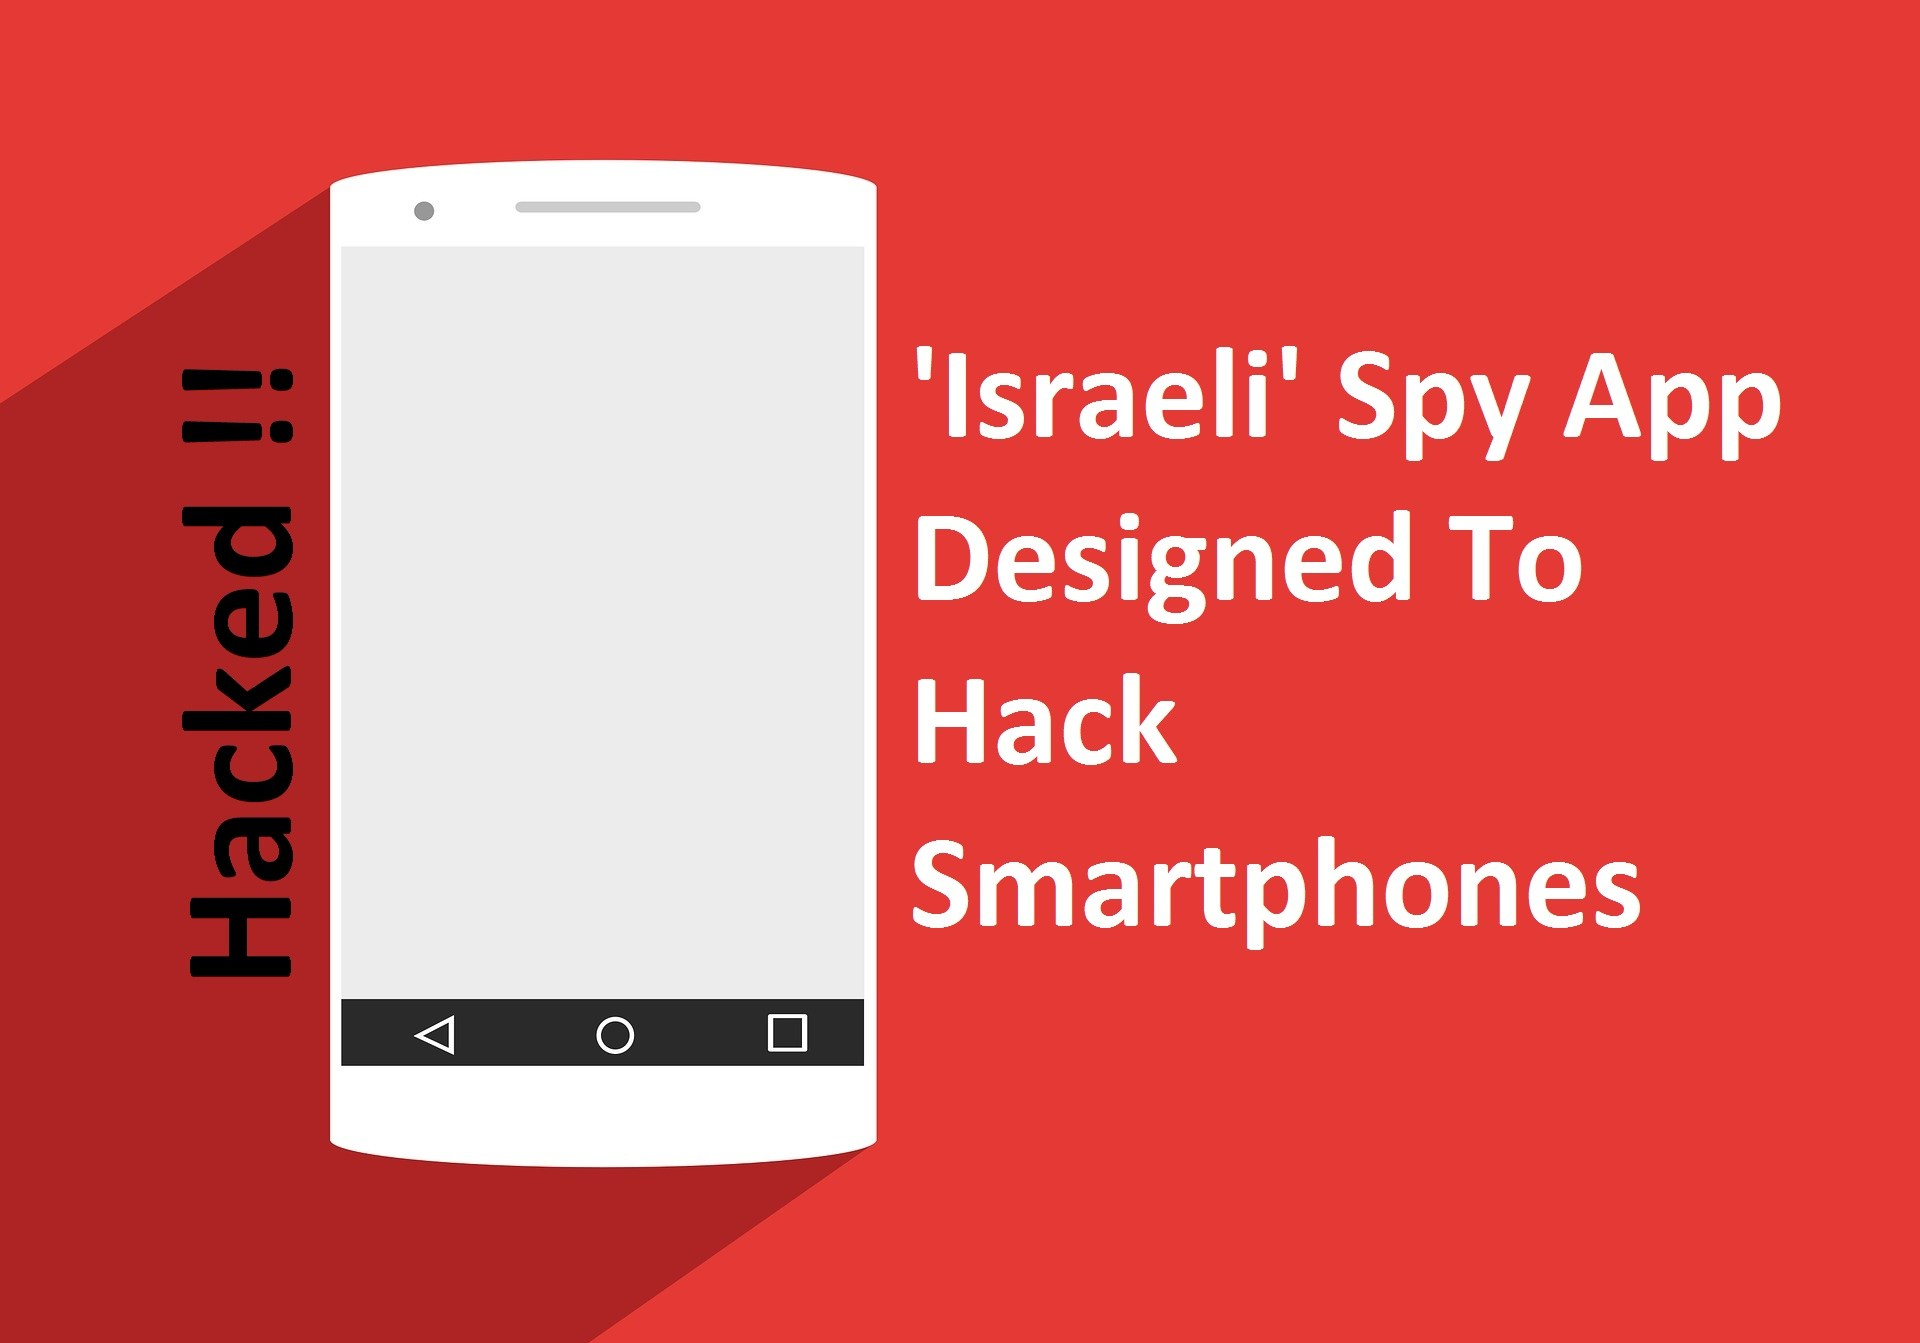 israeli spy app designed to hack smartphones